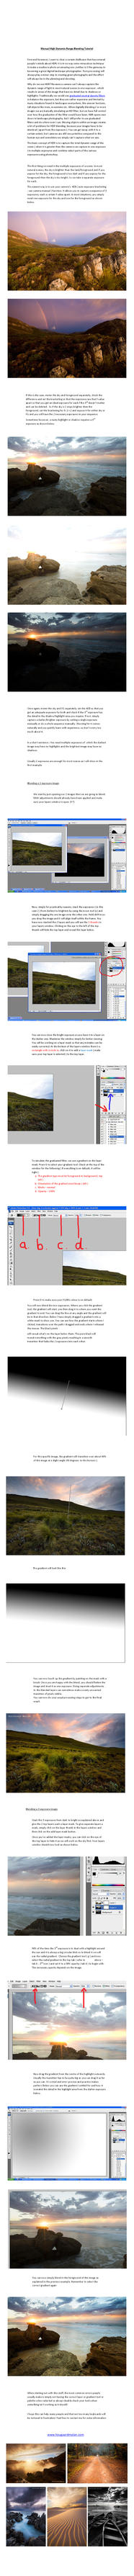 HDR tutorial - printable pdf by hougaard